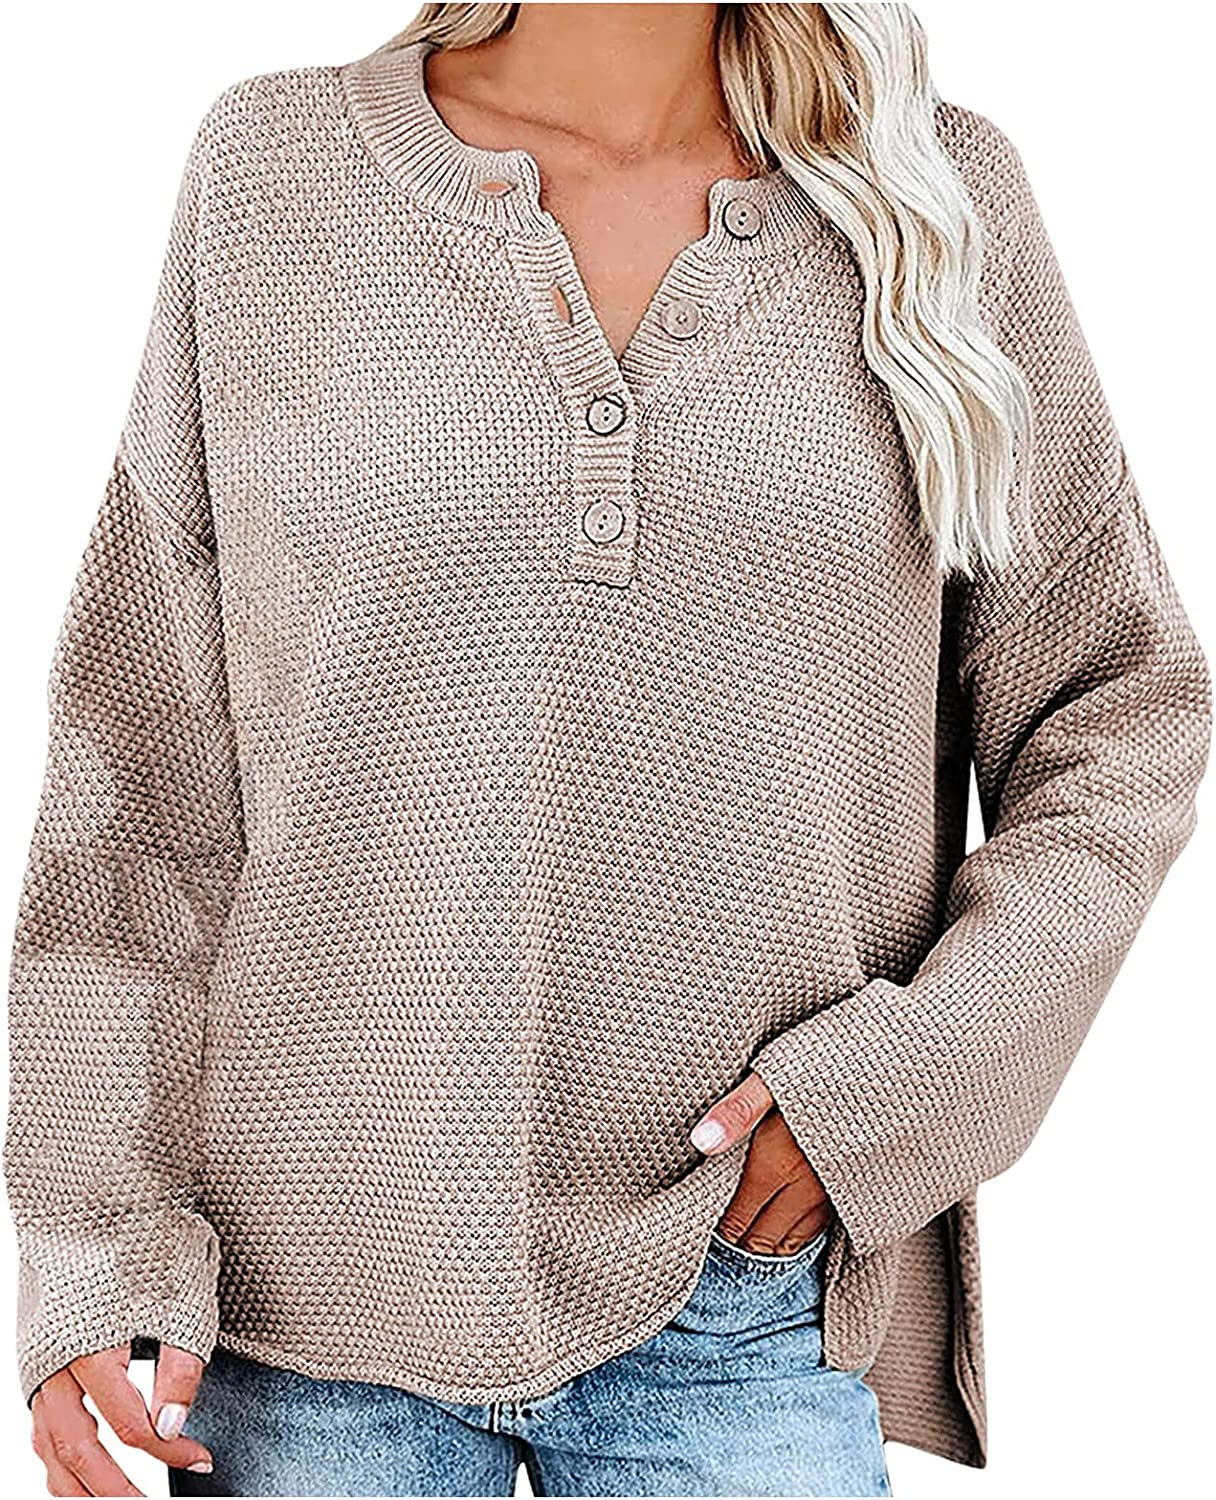 Women's Chunky Knitted Sweaters V Neck Buttons-Down Tops Cozy Loose Full Sleeve Jumper Outwears